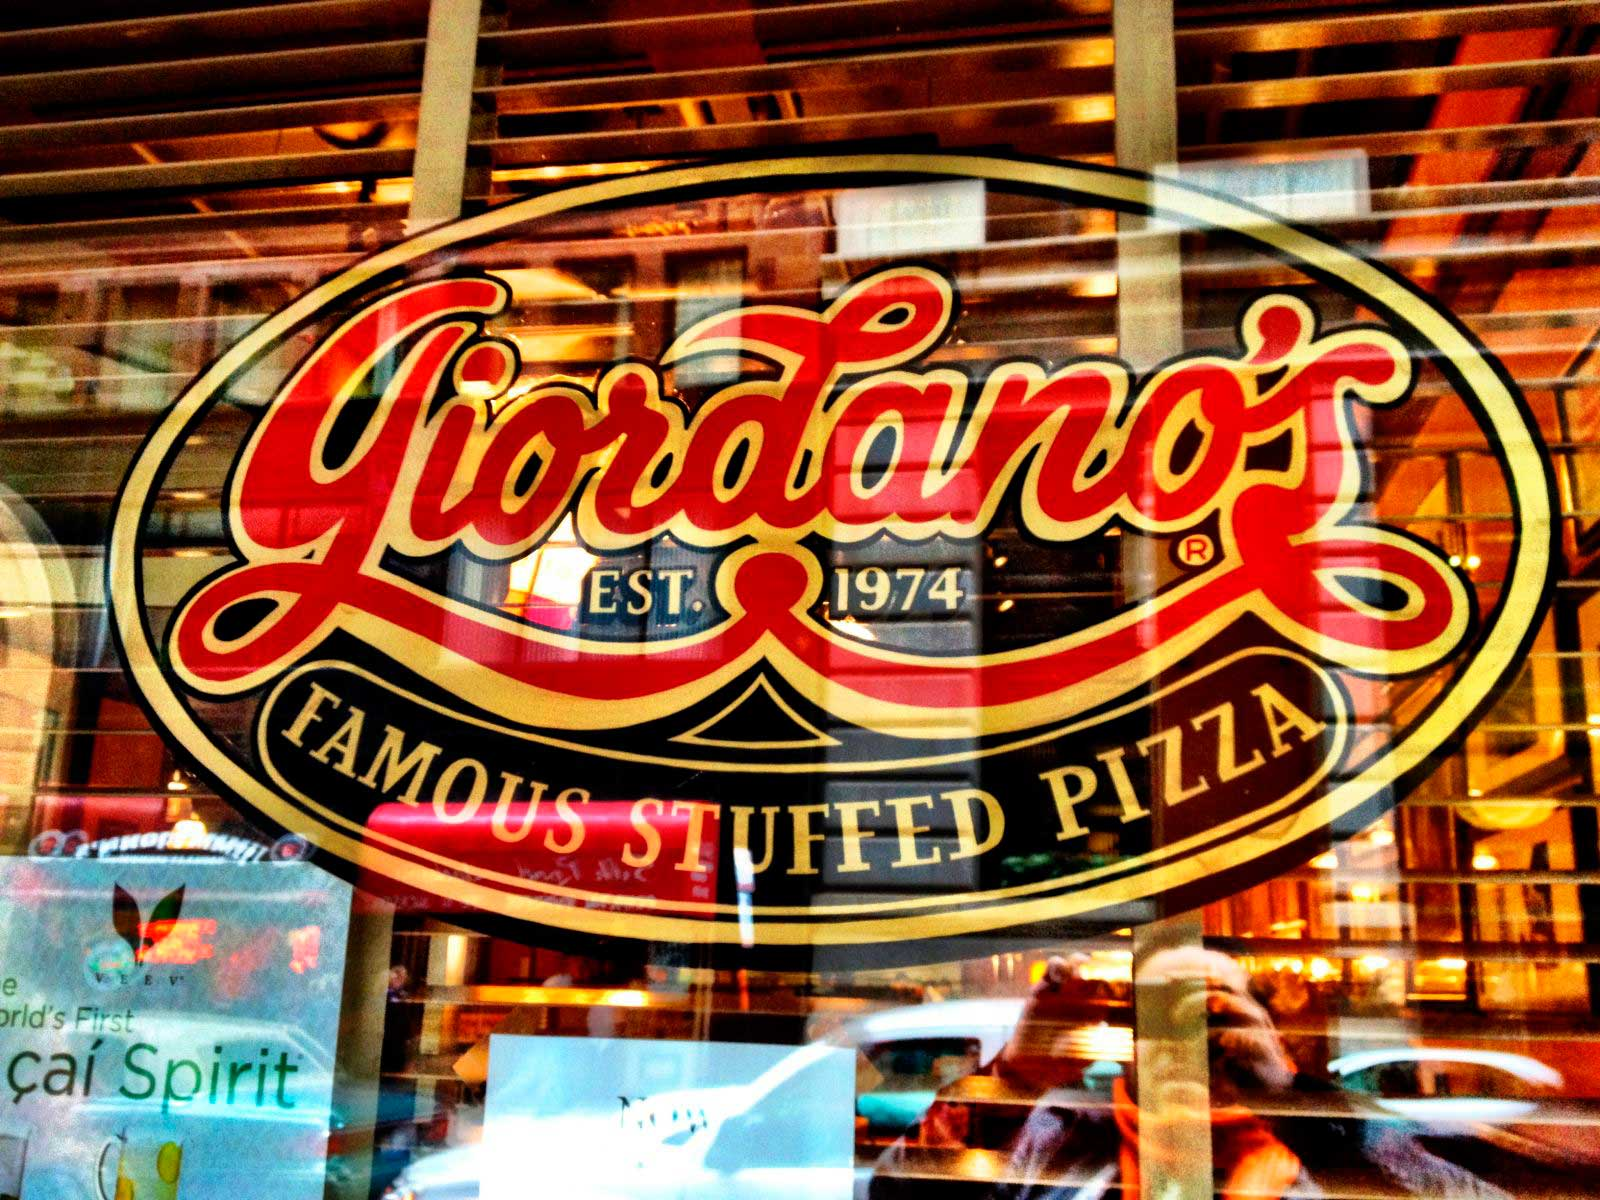 Crédito foto: http://themadeblog.com/eats/giordanos-opening-in-uptown-minneapolis/